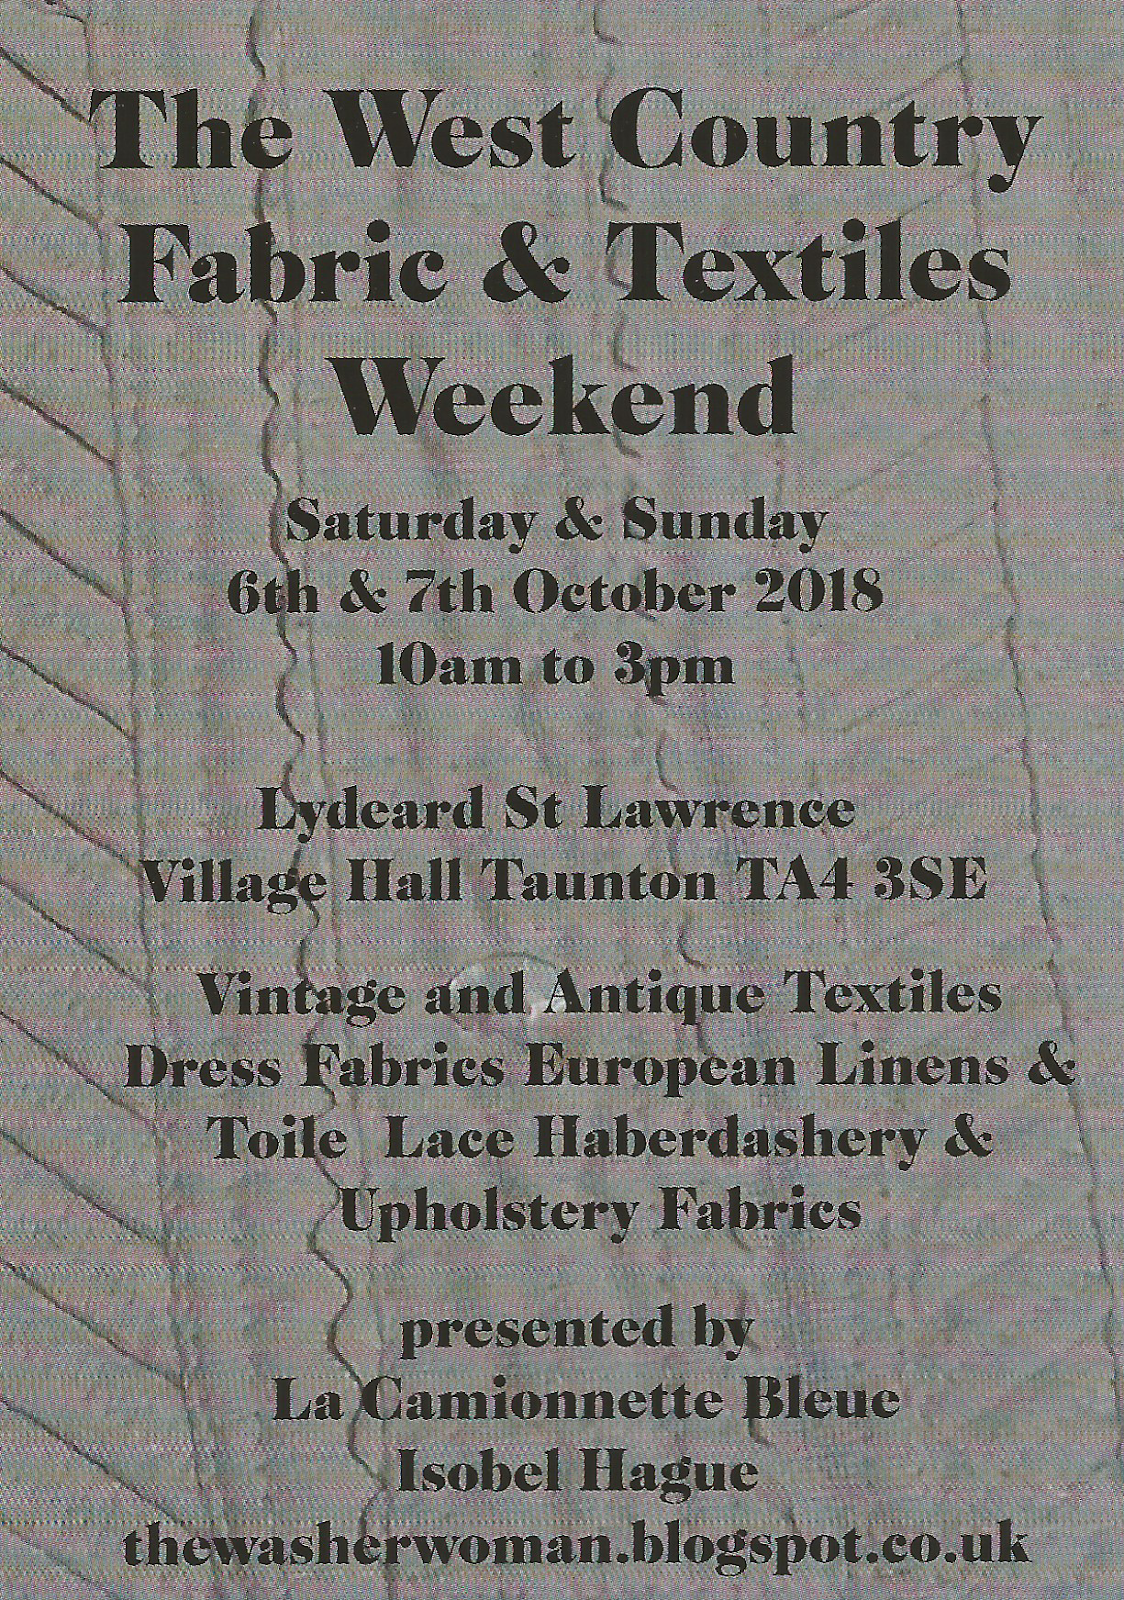 The West Country Fabric and Textiles Weekend